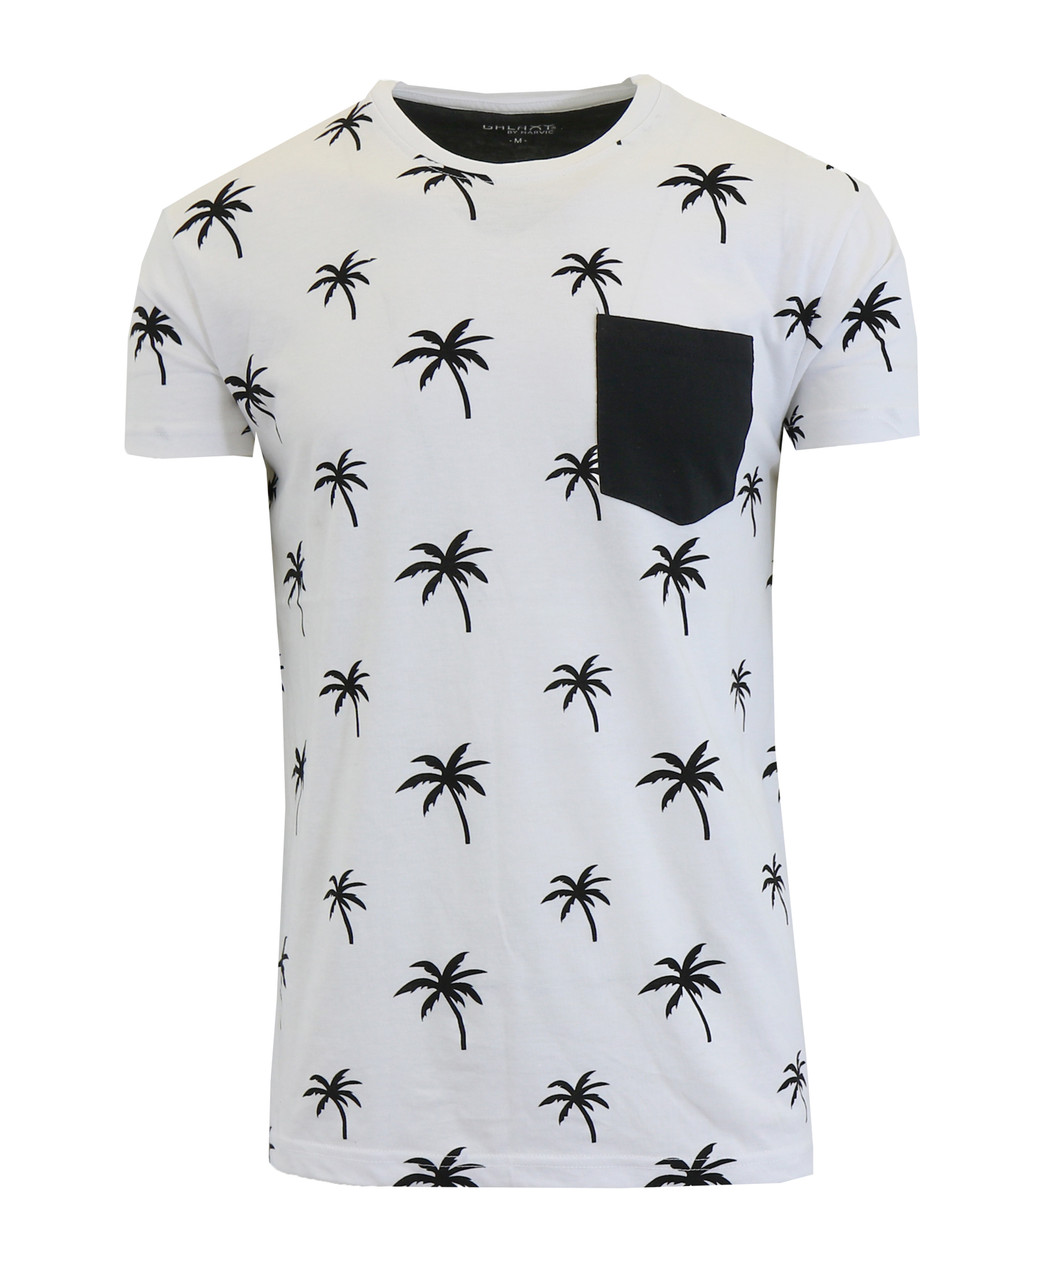 Men's Short Sleeve Printed Tees With Chest Pocket